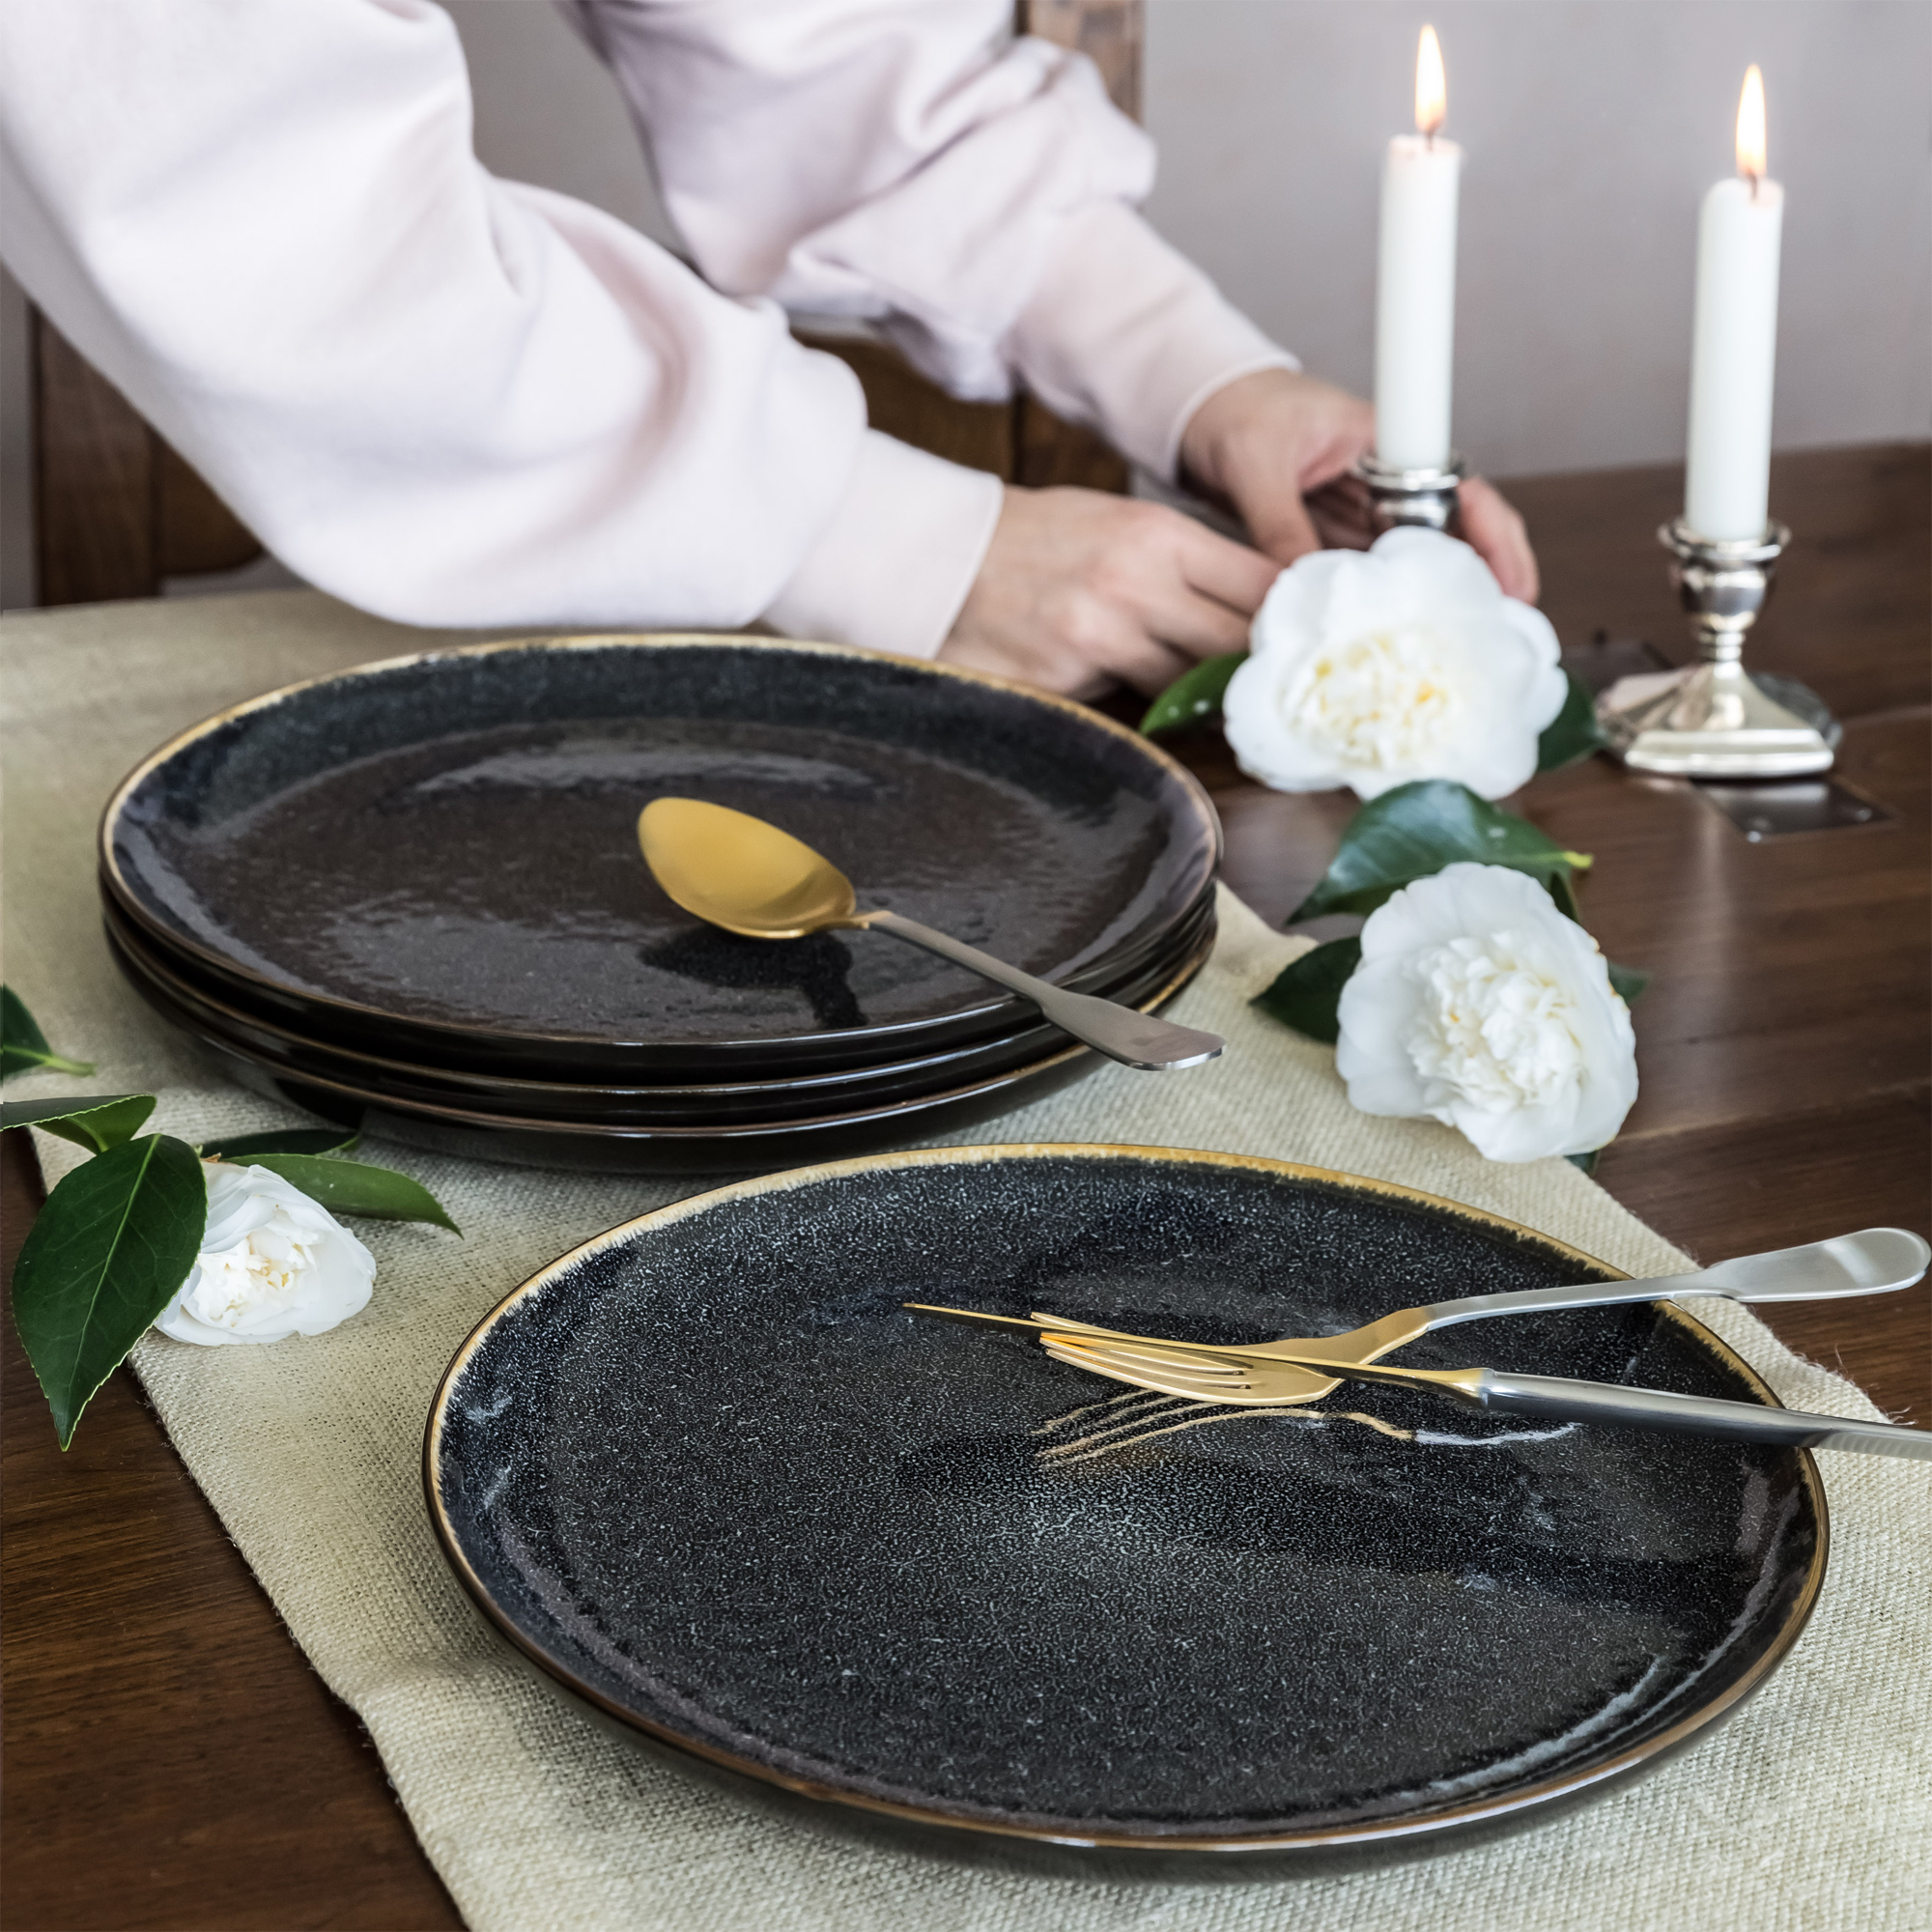 Better Homes and Gardens Burns Dinner Plates set of 4 Black & Set of 4 Heart Shaped Ceramic Plates with Embossed Sentiment ...